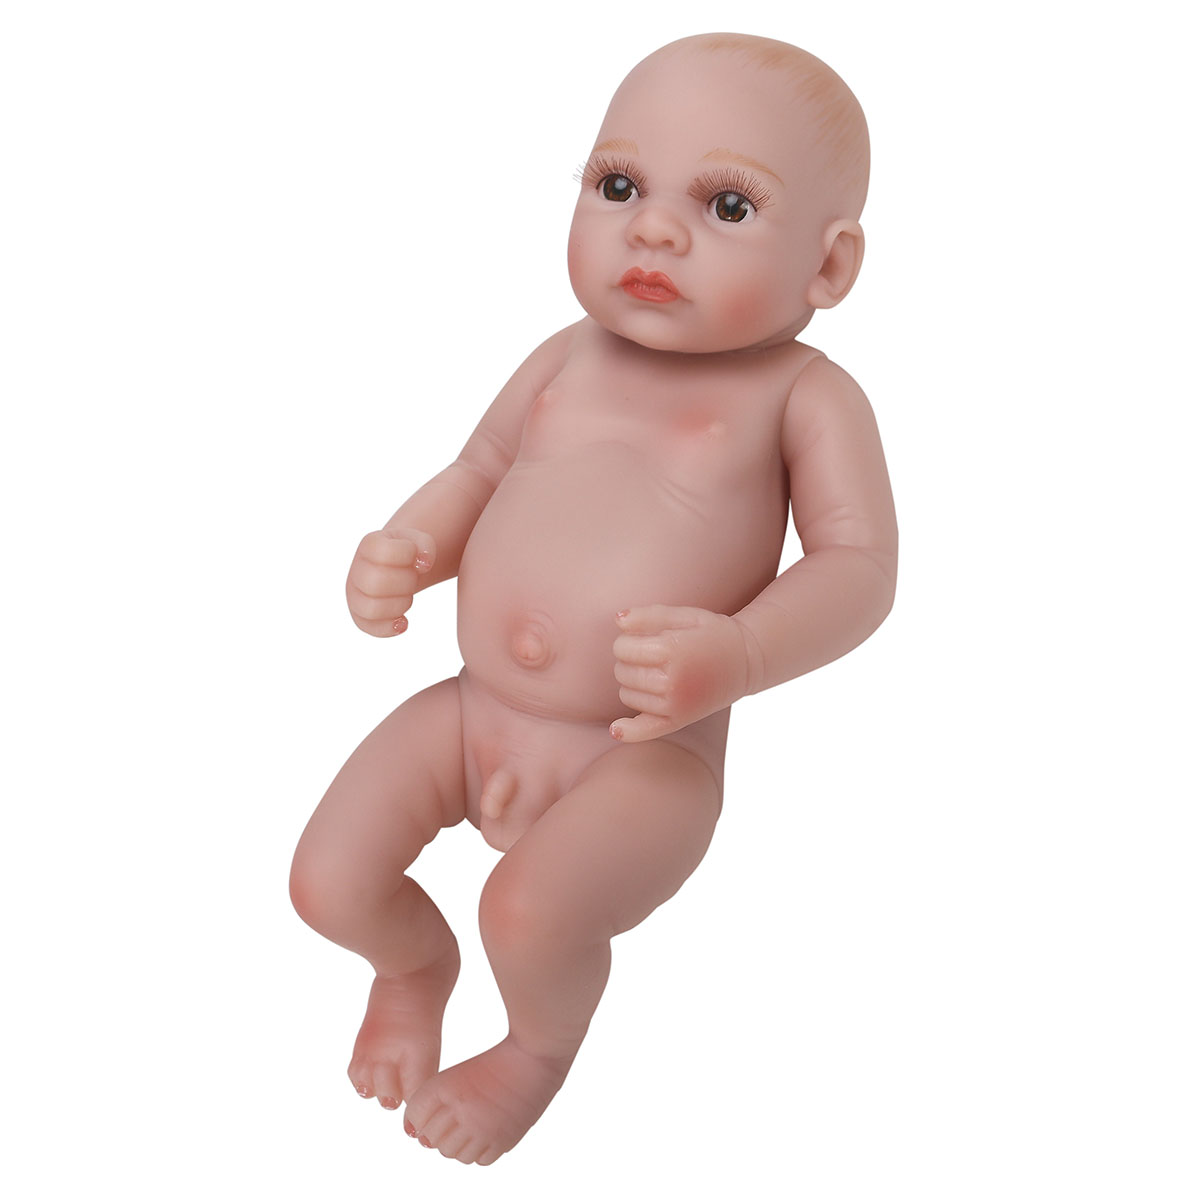 11inch Reborn Baby Doll Handmade Lifelike Boy Play House Toy